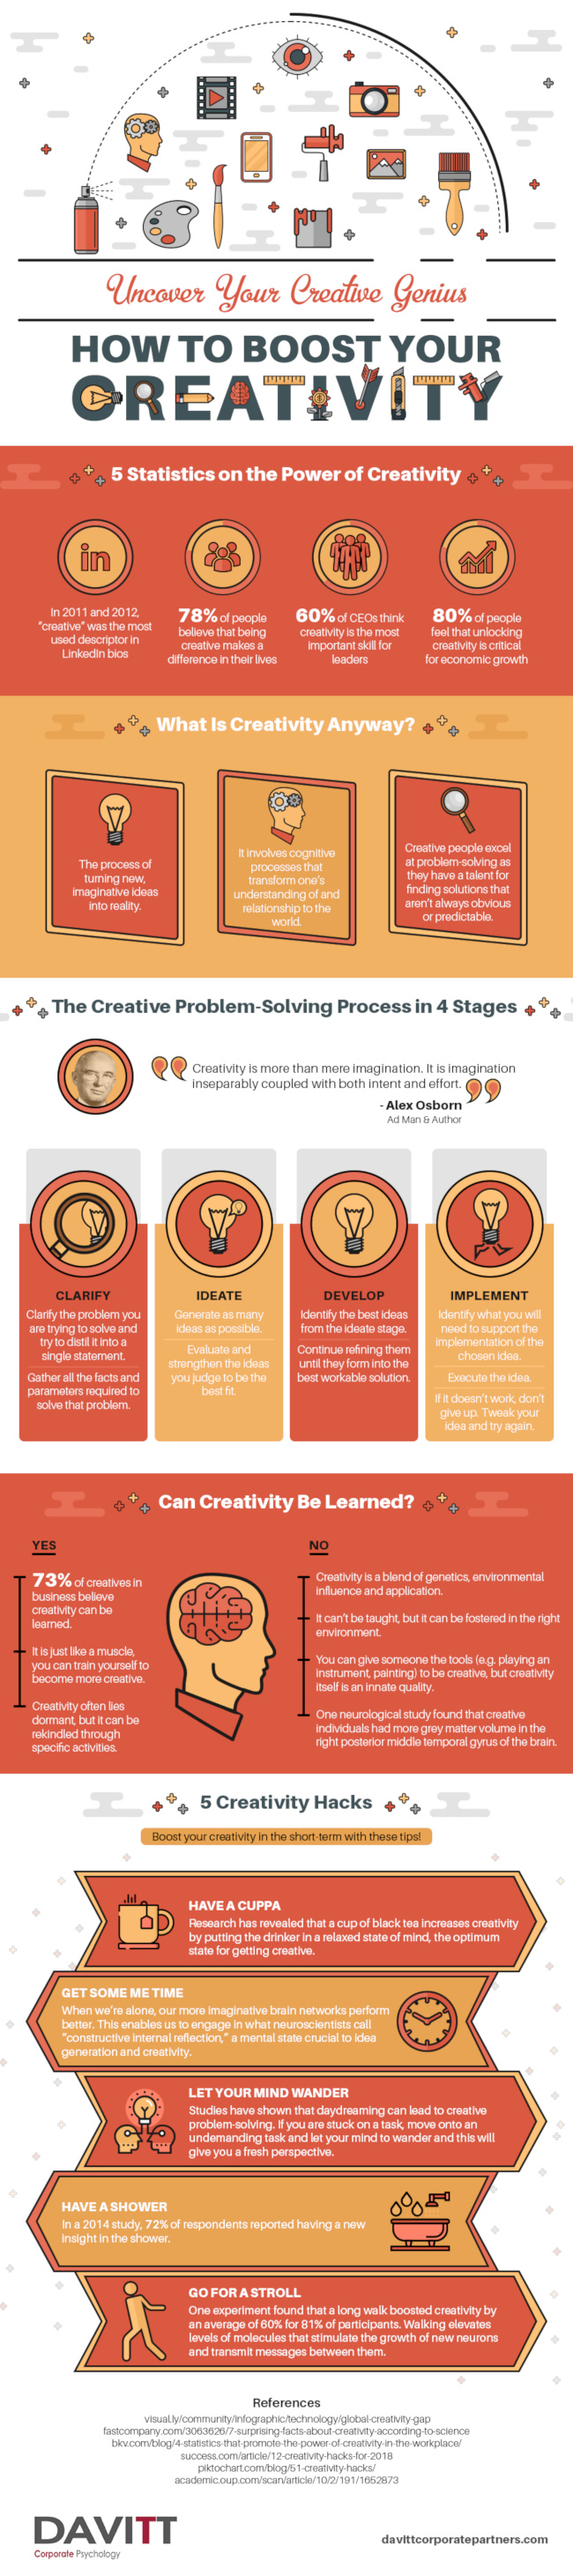 How to Boost Your Creativity [Infographic]